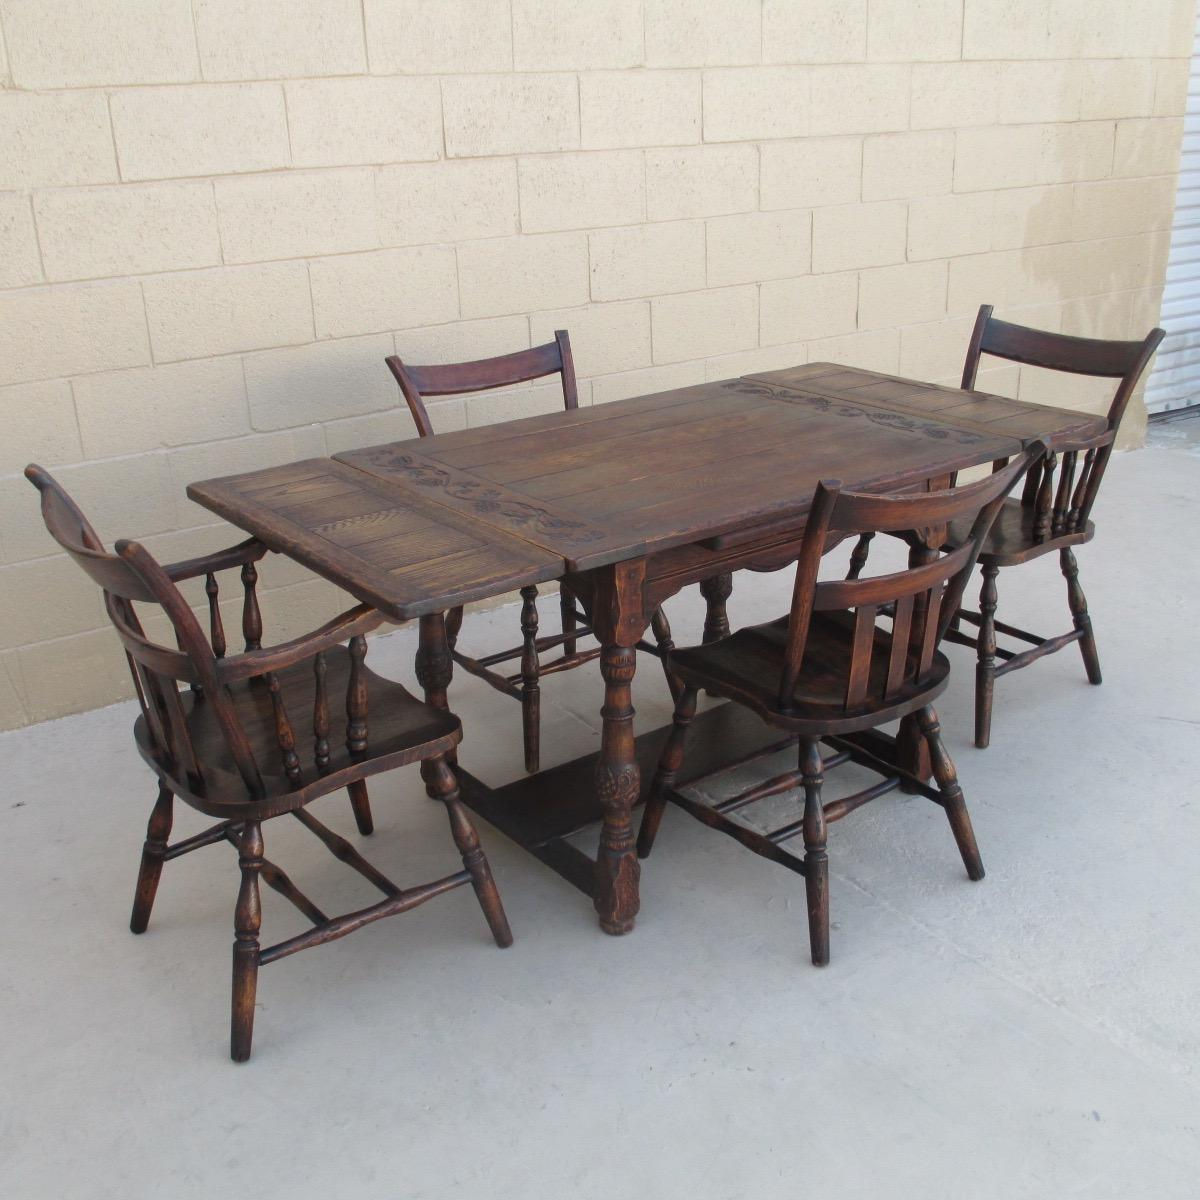 Handsome spanish style oak table and four chairs antique for Table 52 oak brook